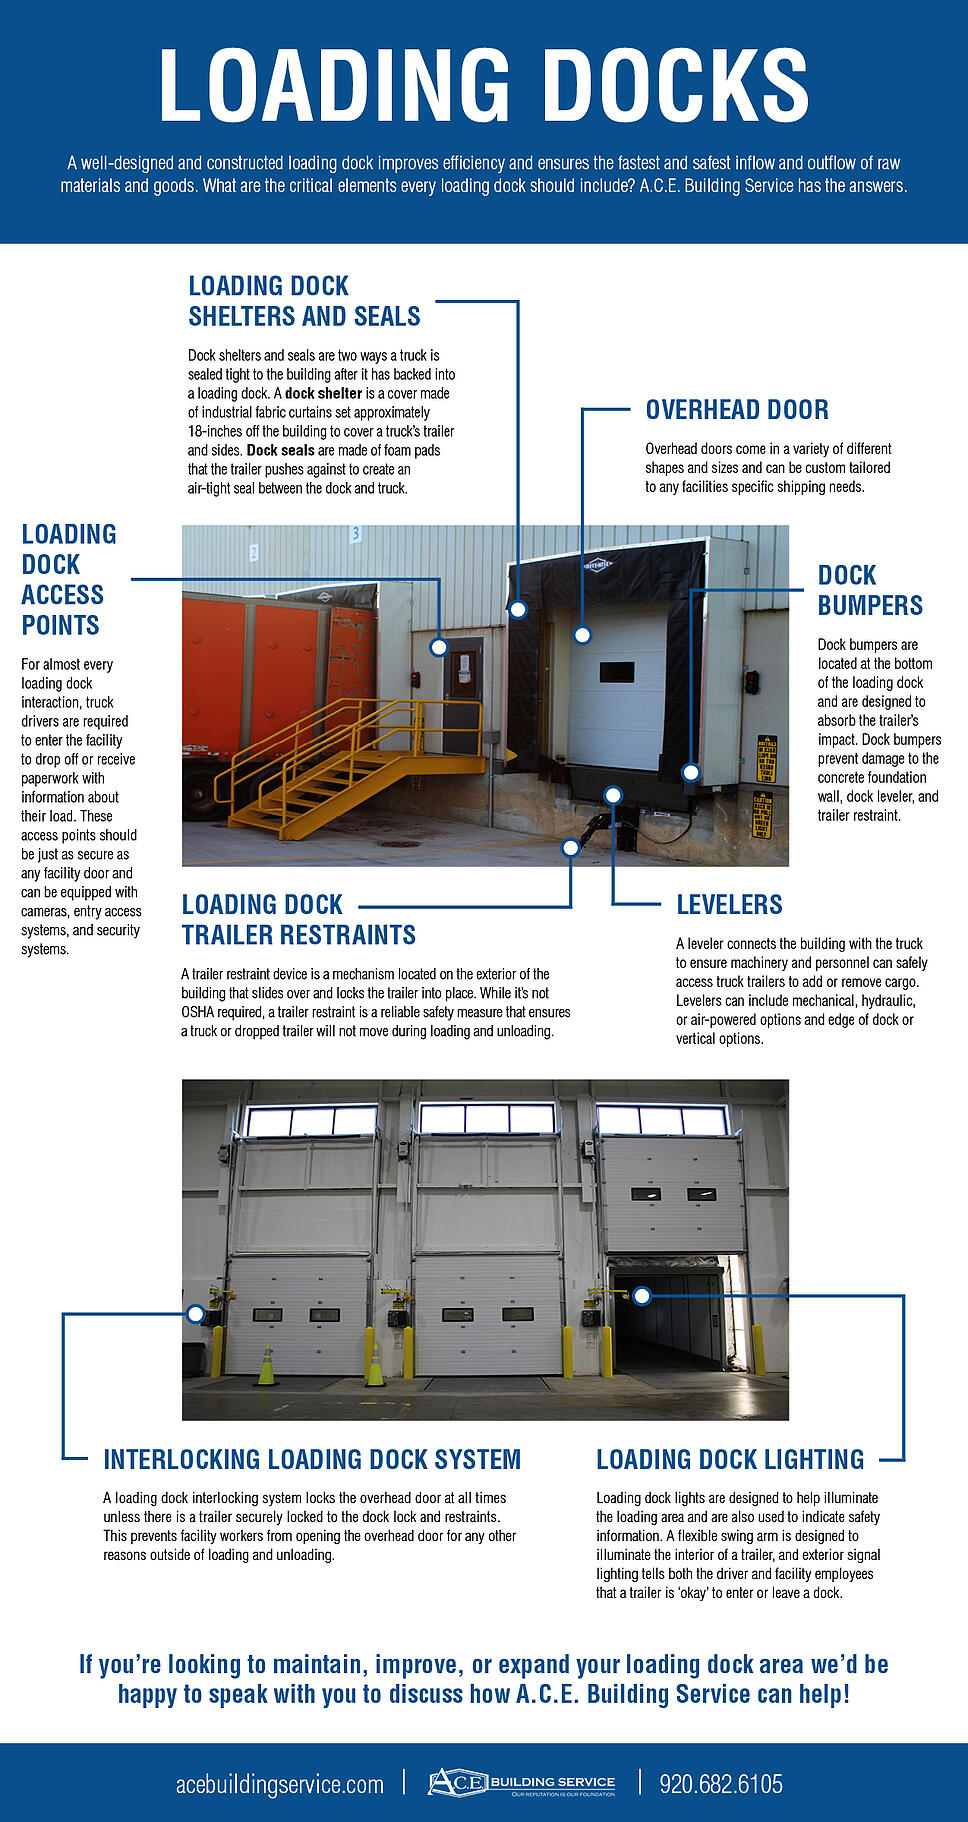 A loading dock infographic shows the parts of a loading dock with images and labels using blue text on a white background.